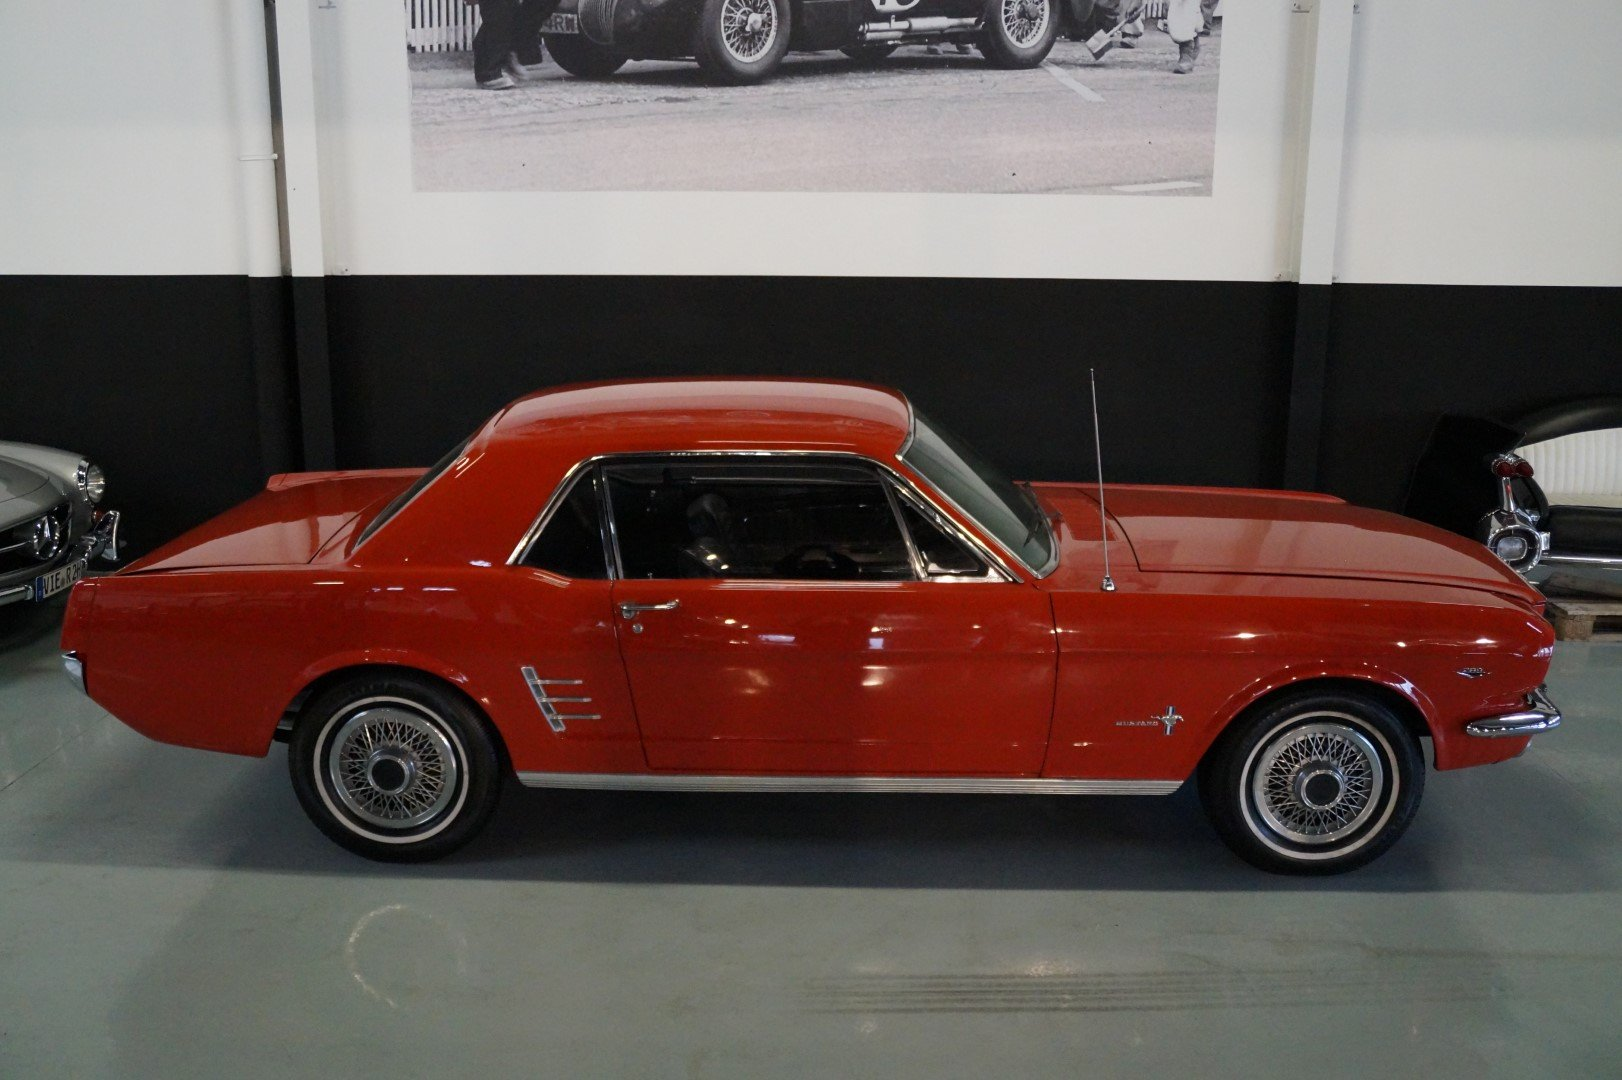 FORD MUSTANG V8 Coupe Nice Driver (1966) For Sale (picture 2 of 6)